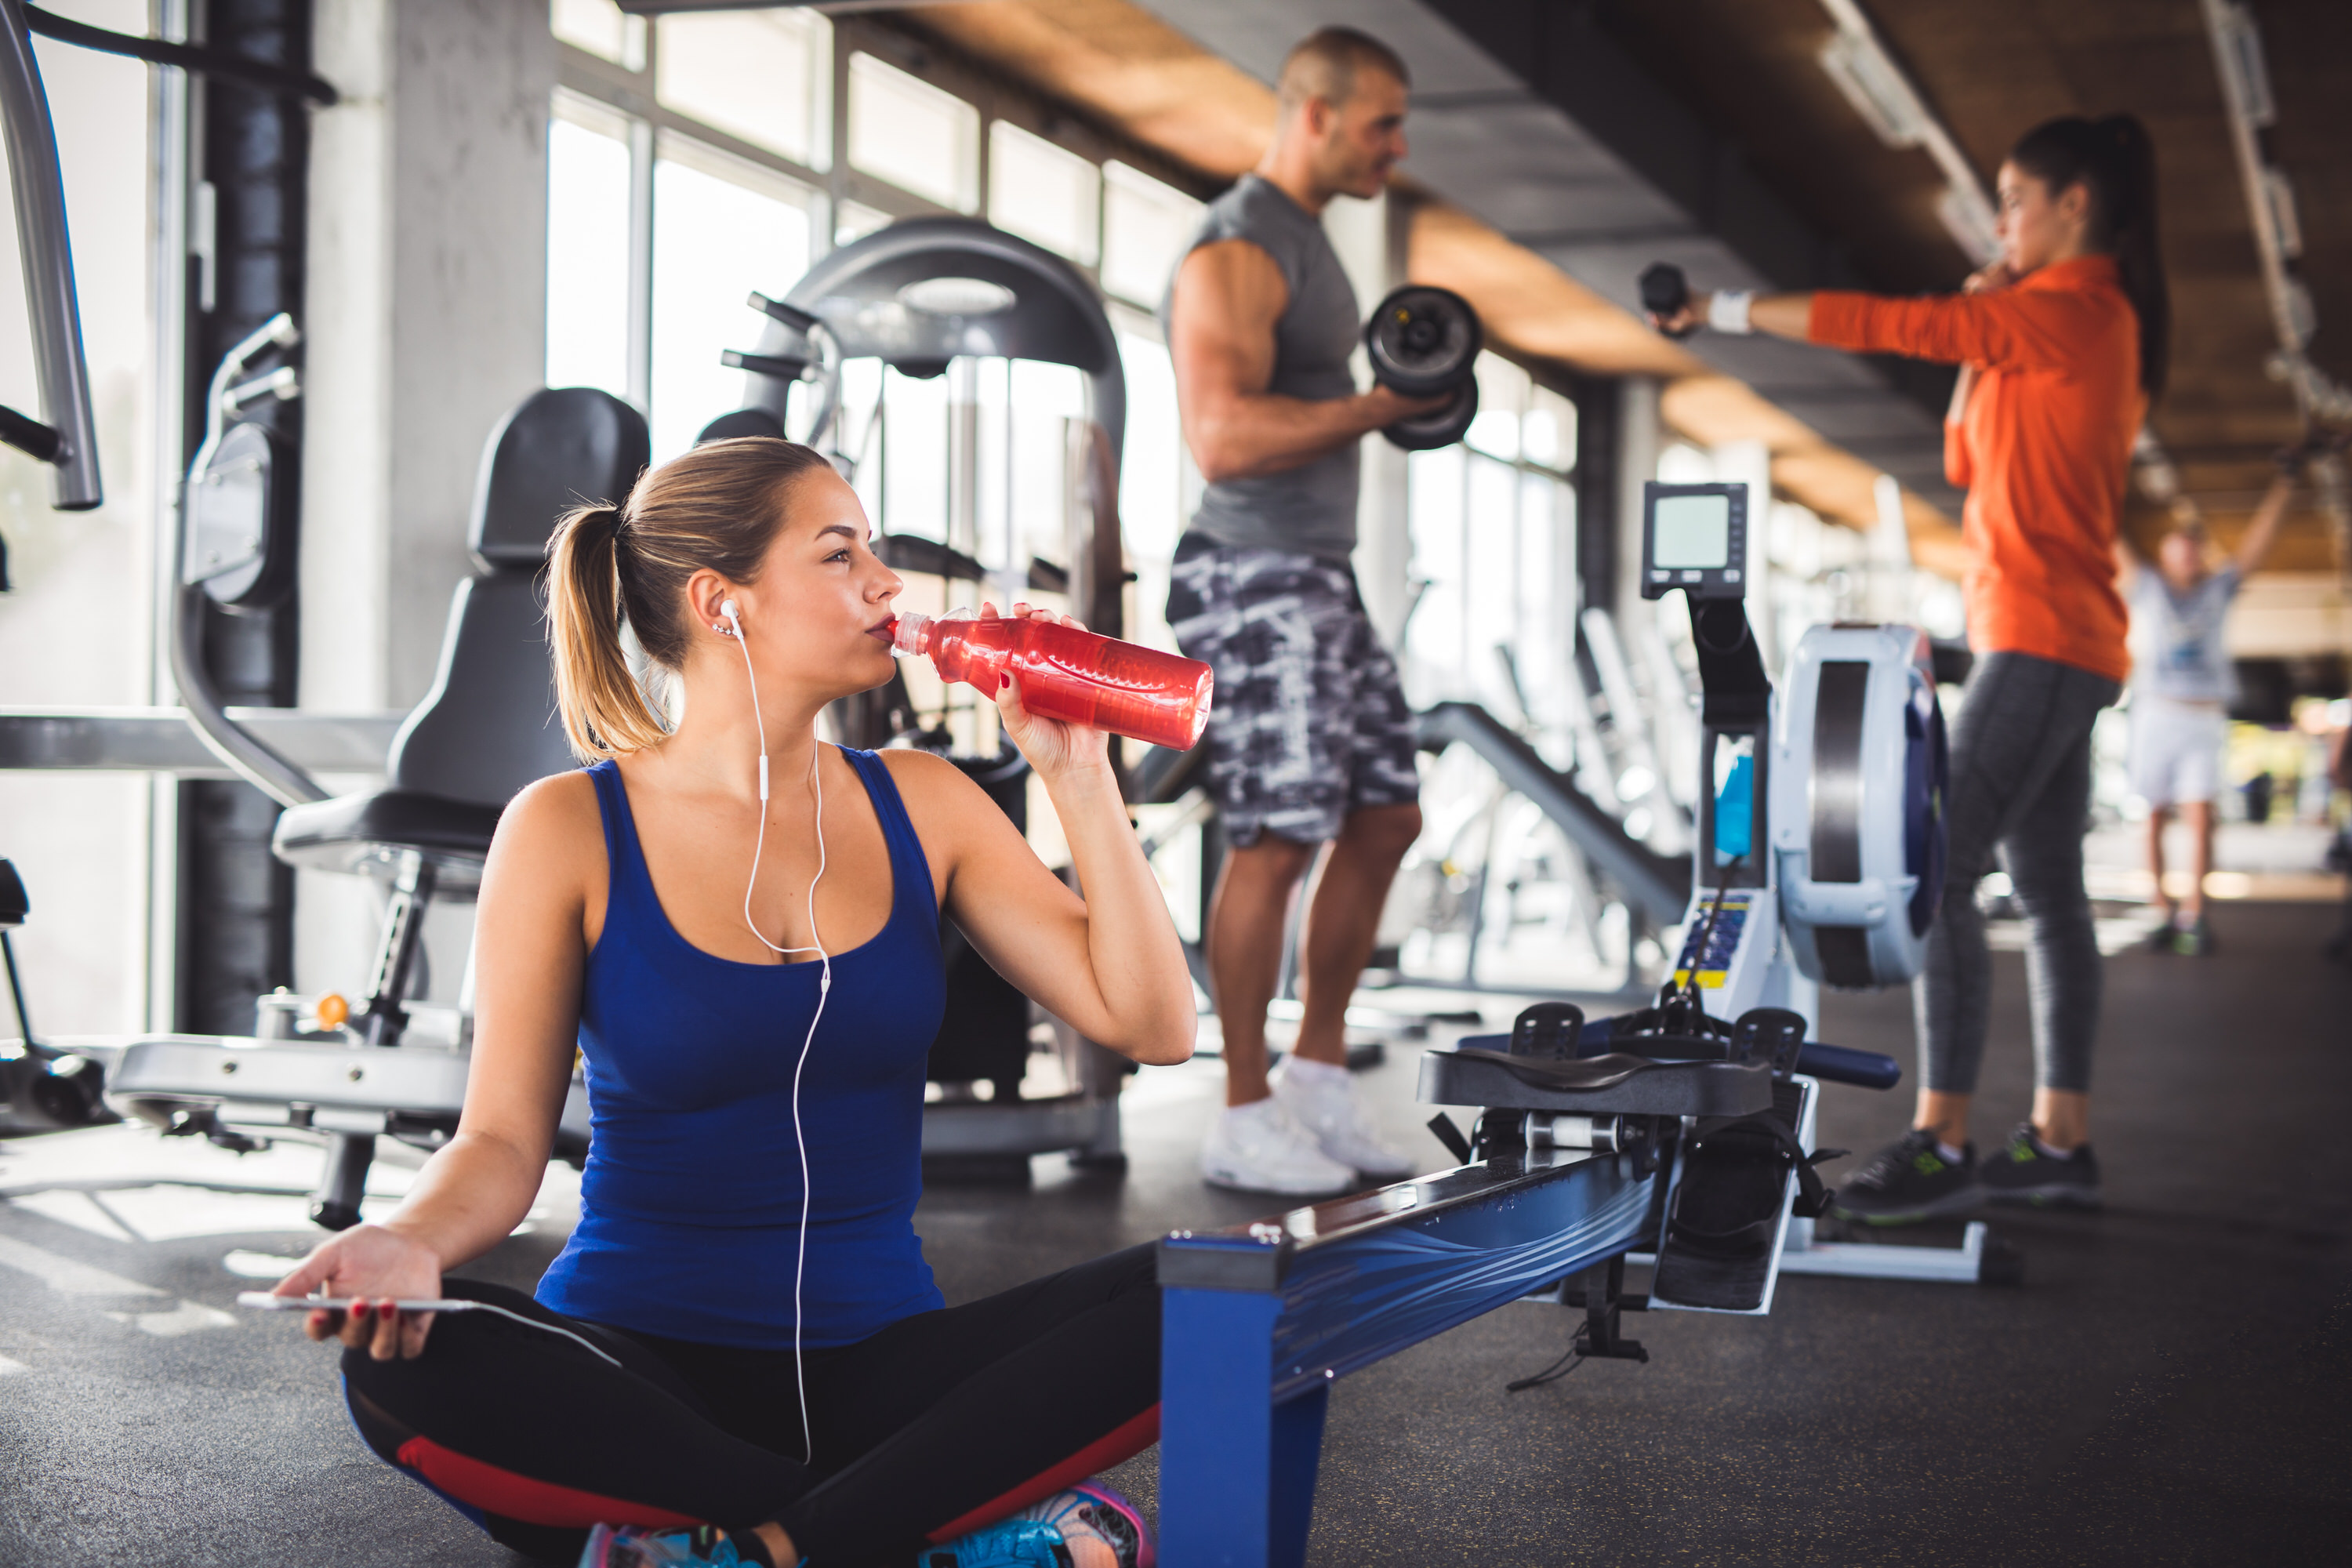 Young woman drinking refreshment drink after workout at gym. There are two people exercising in the background.